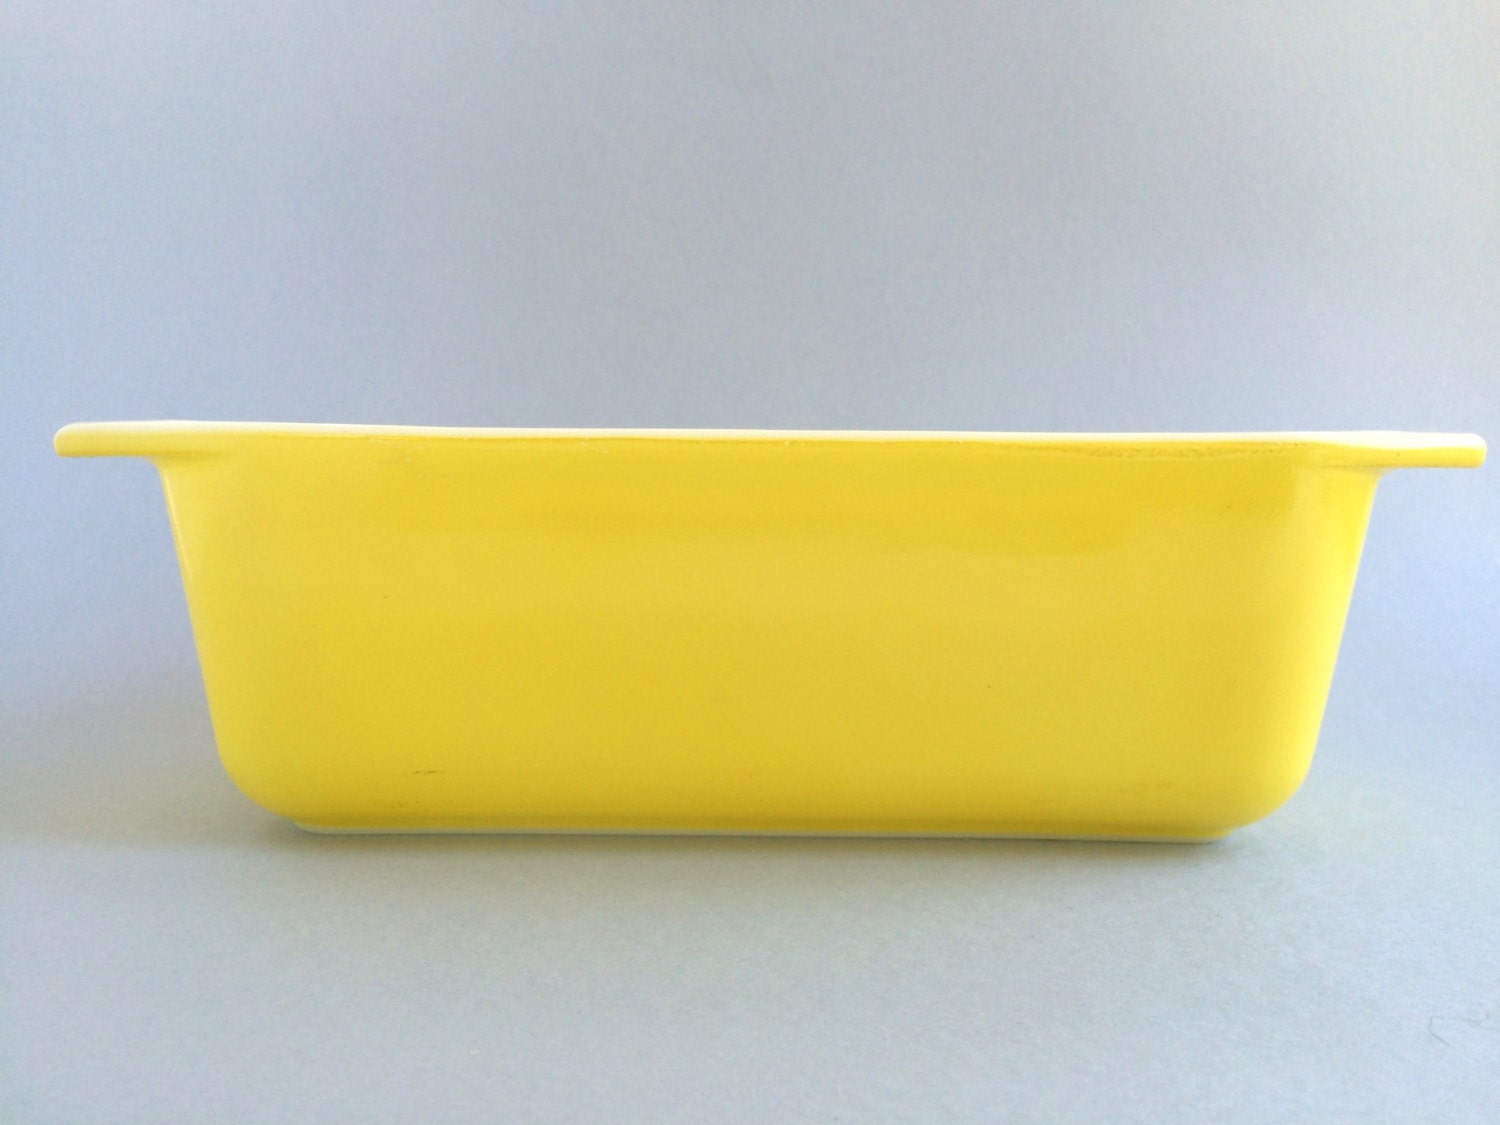 Retro Kitchen Canisters Yellow Pyrex Loaf Pan Vintage Pyrex Pyrex 913 Bright